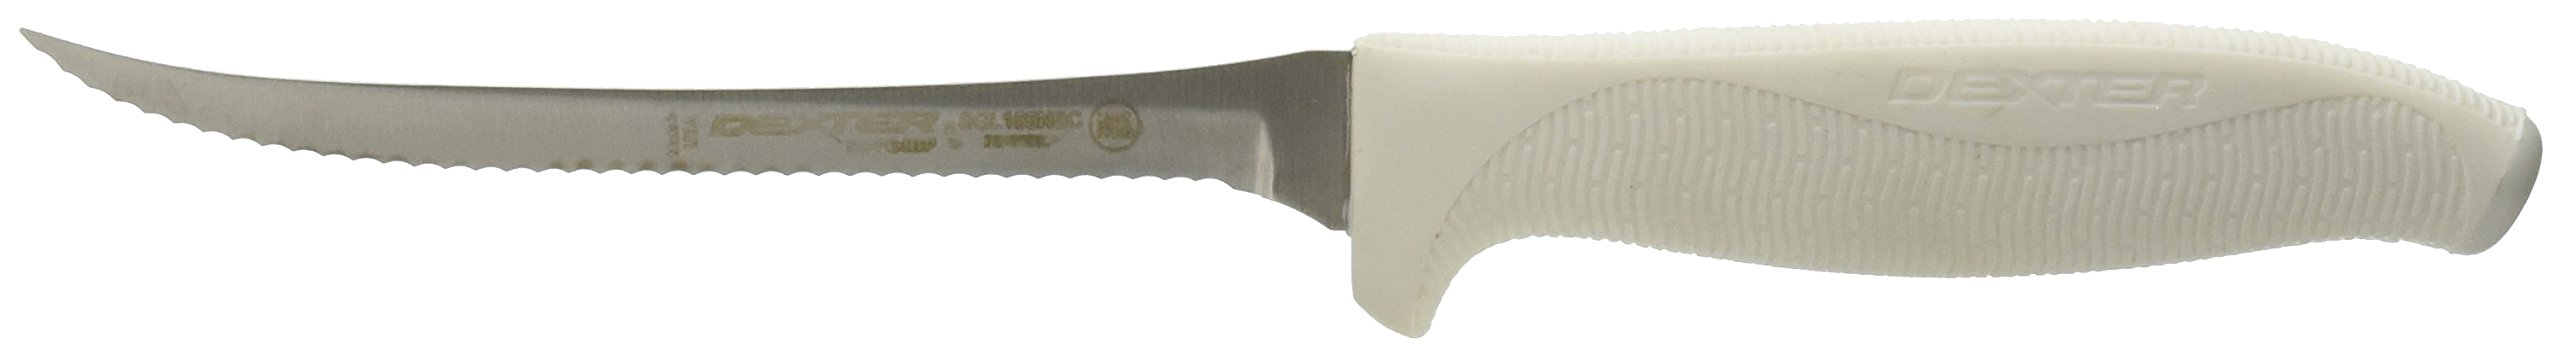 Dexter Russel SYNCHKG011671 Scalloped Utility Slicer, 5.5'', White by Dexter Russel